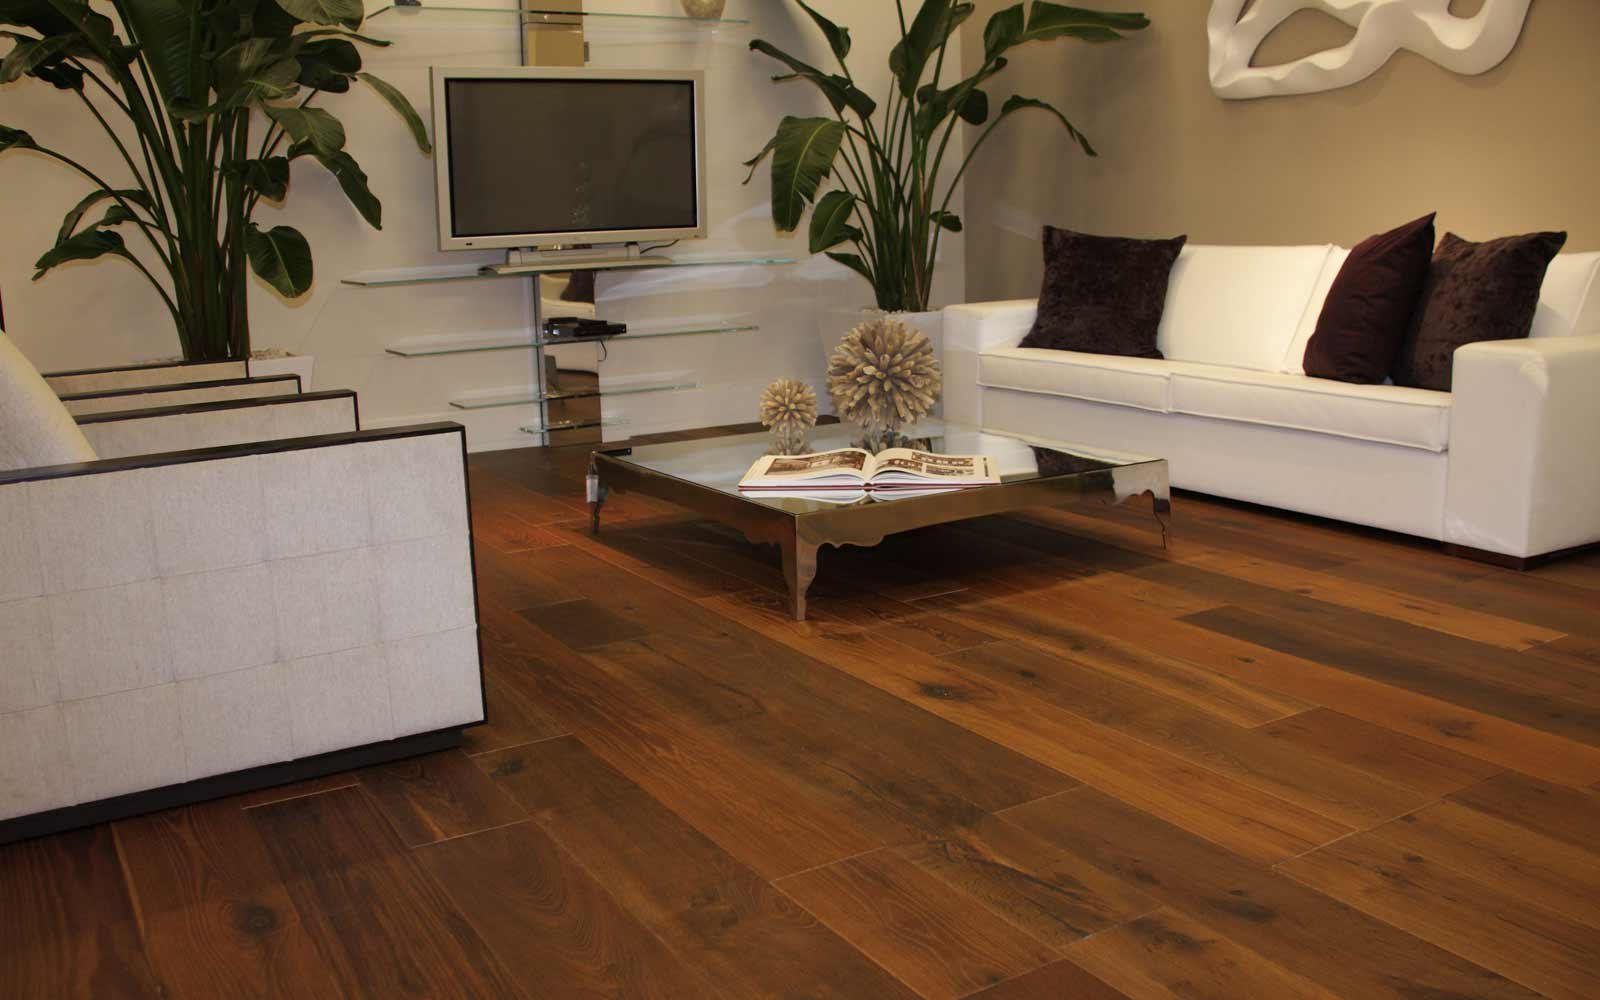 Flooring In House : Brazilian koa hardwood flooring for your home